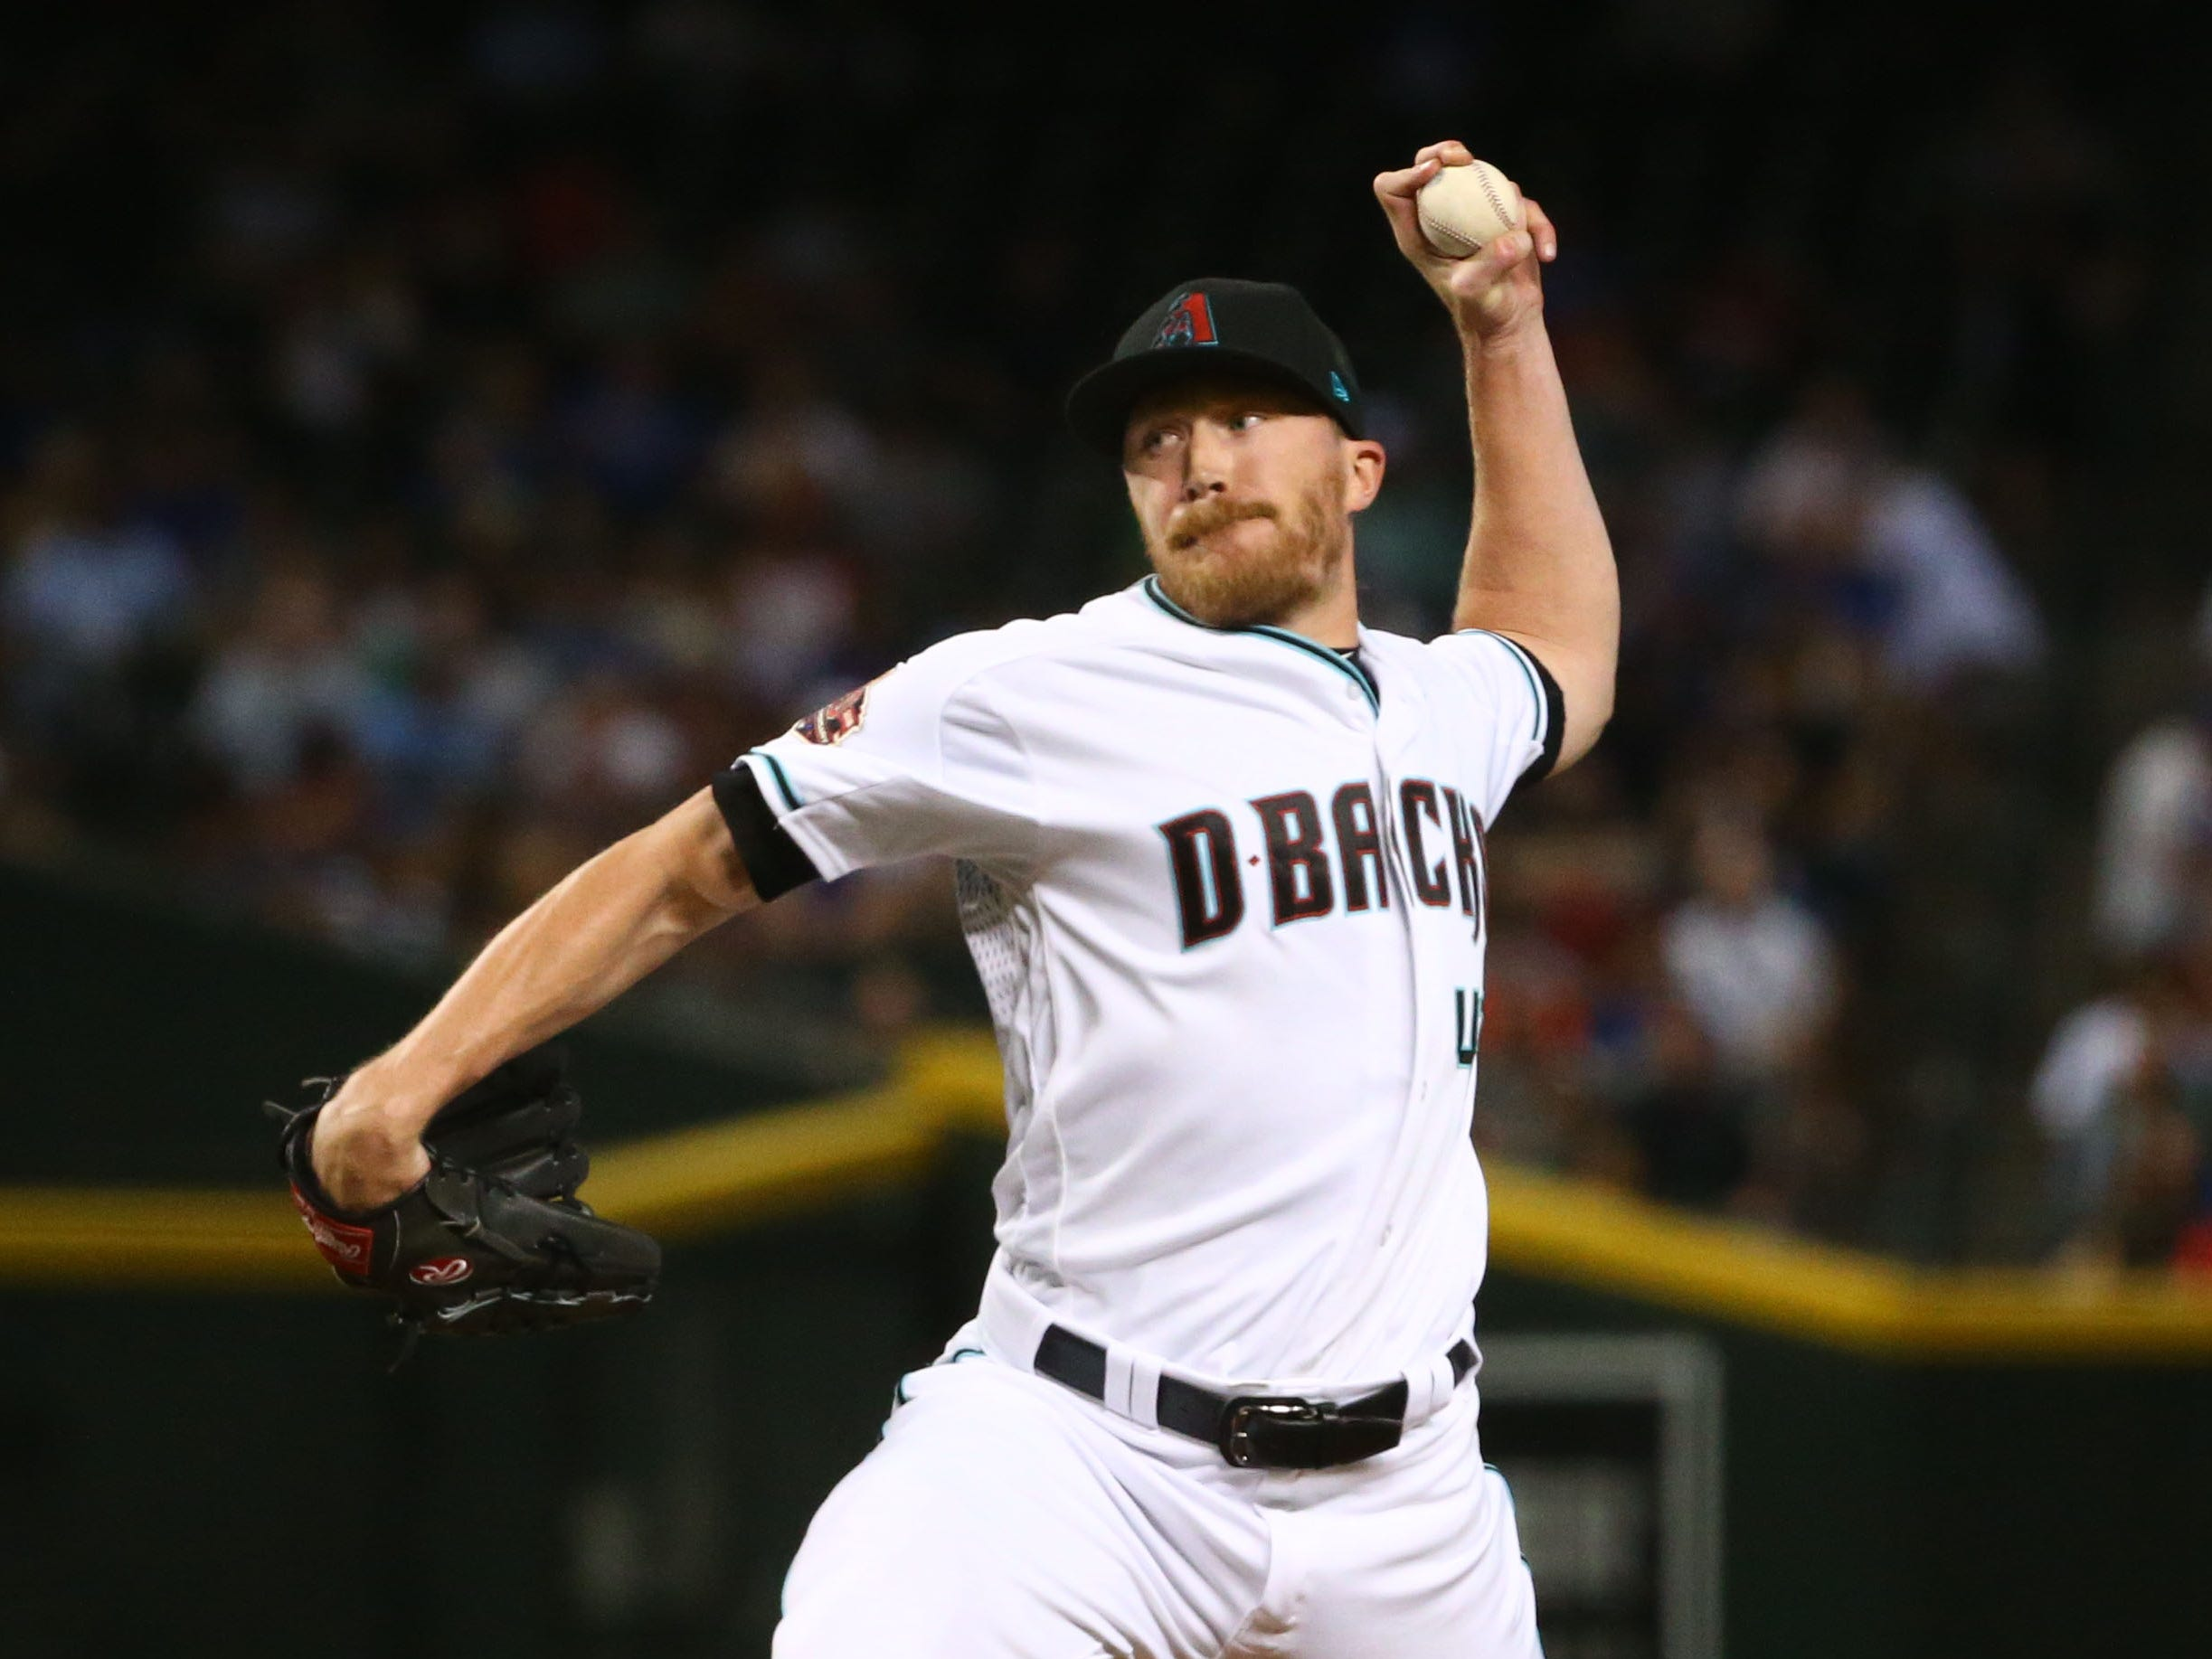 Arizona Diamondbacks reliever Jake Diekman throws to the Chicago Cubs in the fourth inning on Sep. 18, 2018, at Chase Field in Phoenix, Ariz.